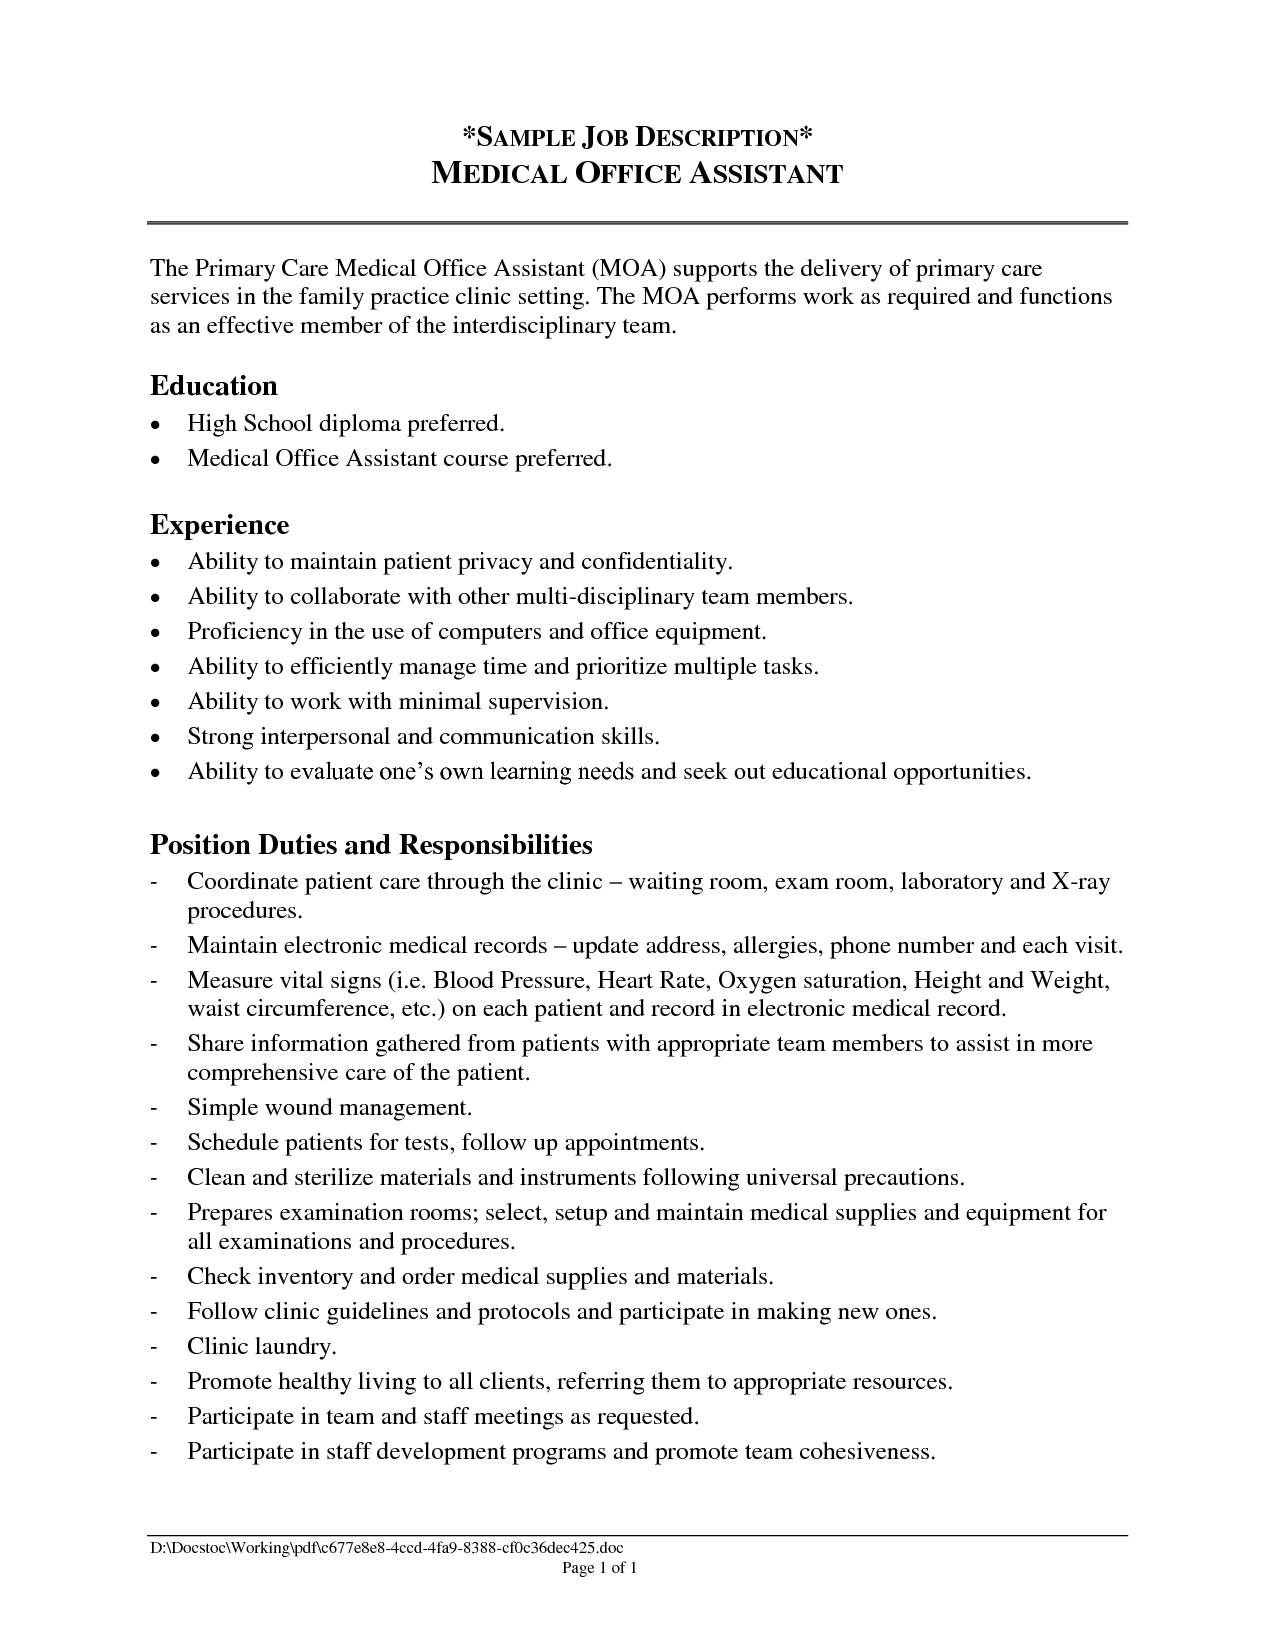 Sample Resumes For Administrative Assistant Positions Medical Administrative Assistant Jobs 2016